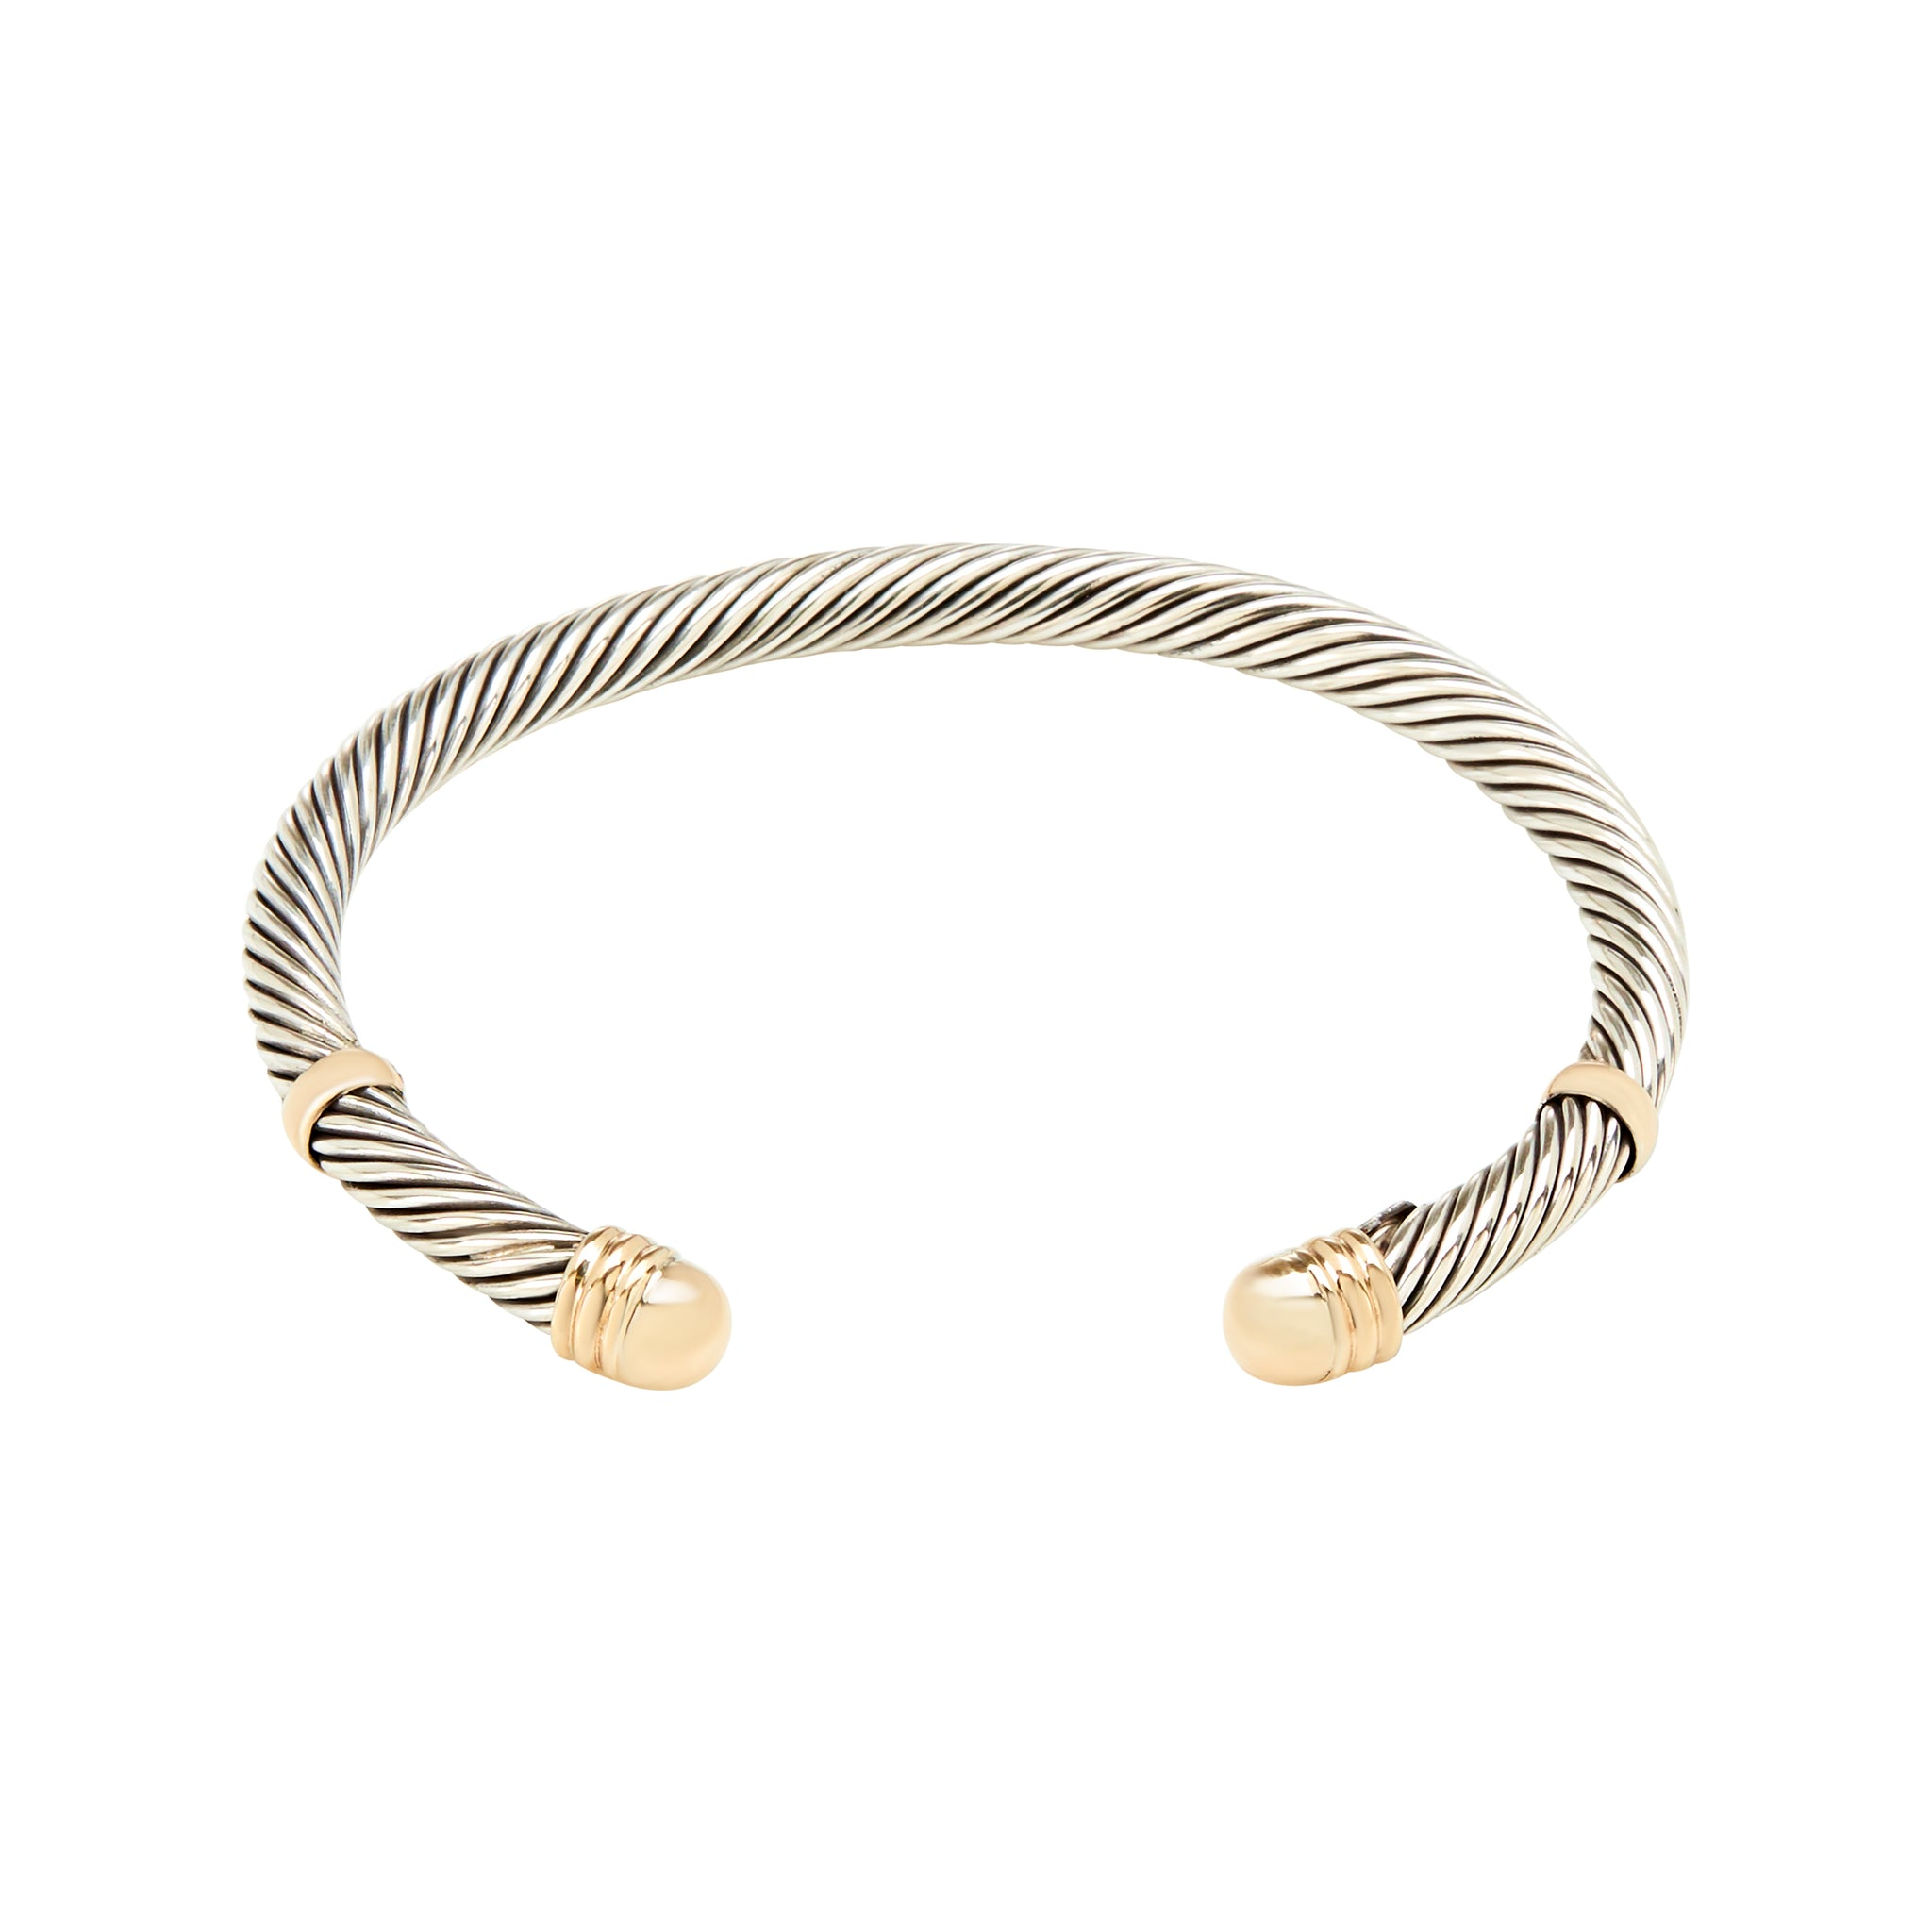 19e8759e7f2 Bicoulour Twisted Cuff Bracelet - Sterling Silver and 14k Solid Gold ...